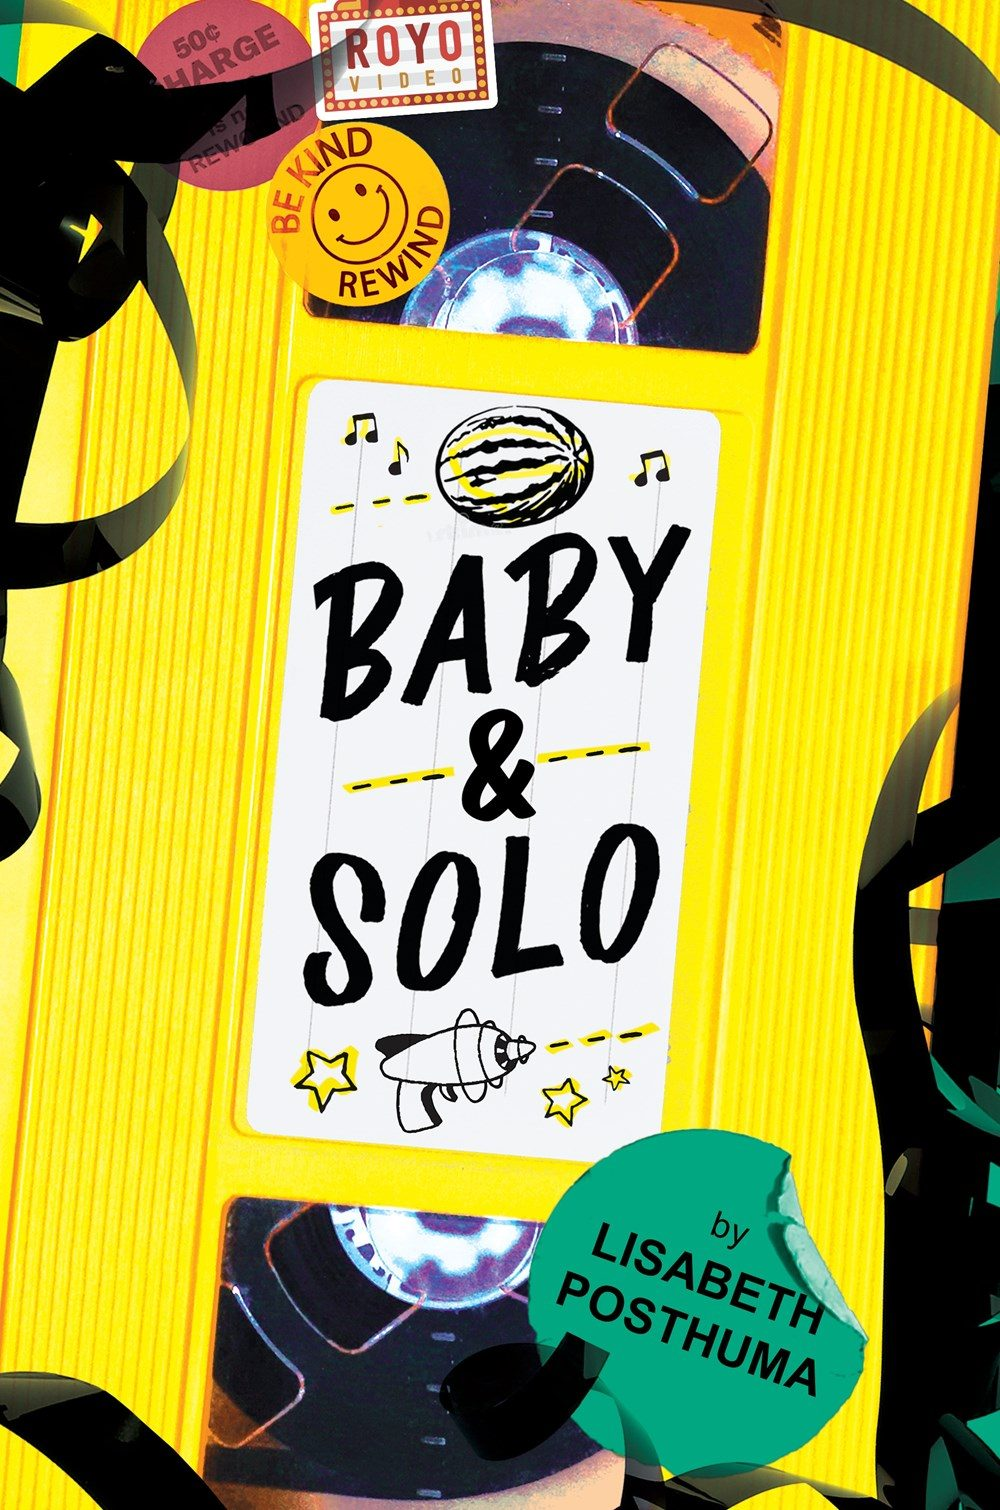 Baby & Solo By Lisabeth Posthuma Release Date? 2021 YA LGBT & Historical Fiction Releases